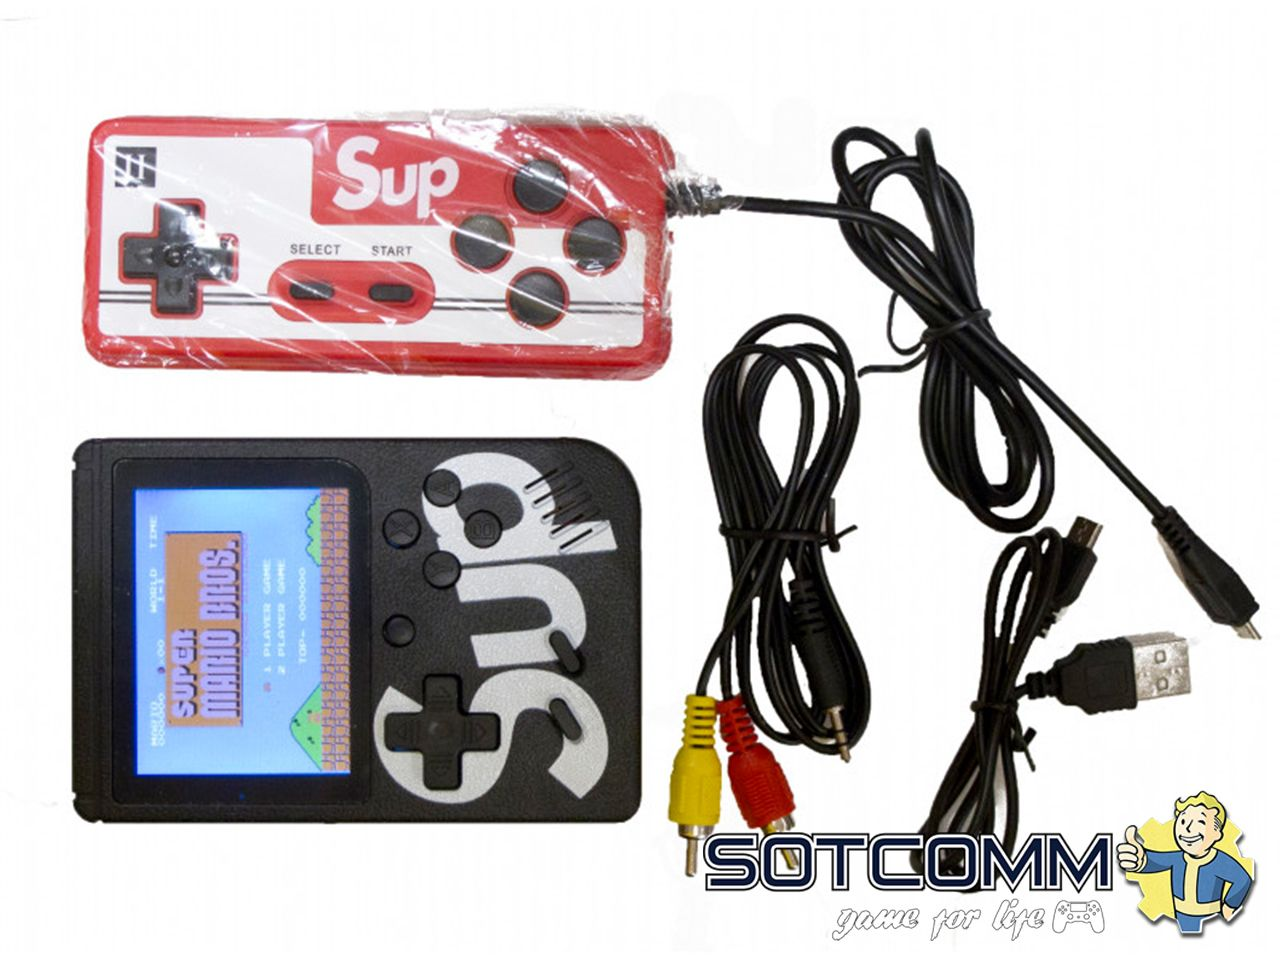 Sup Game box 400 in 1 + джойстик